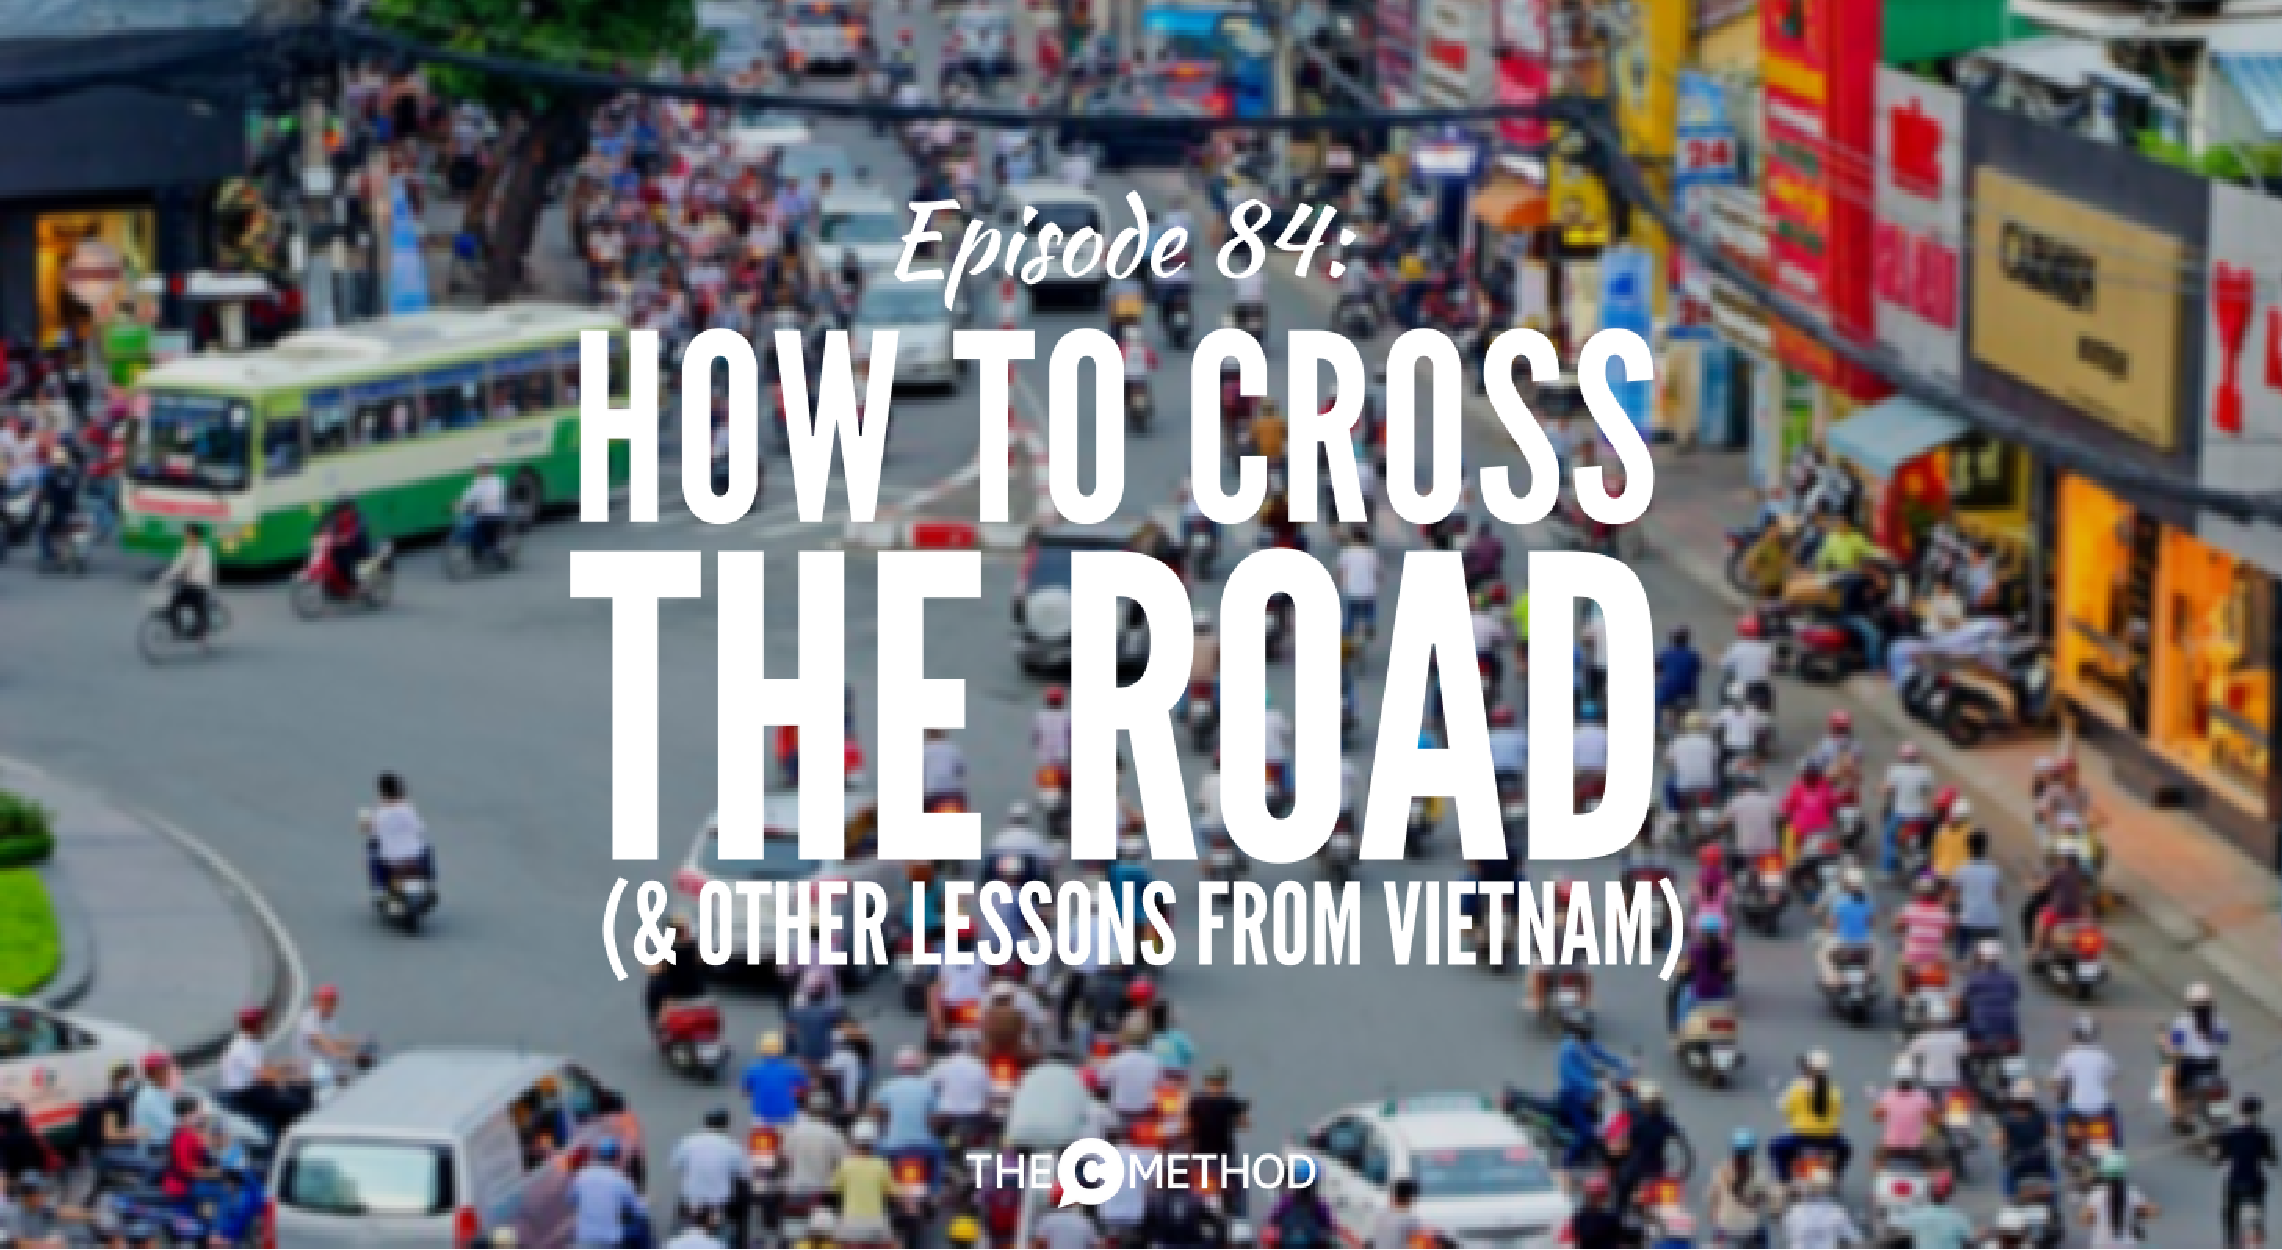 VIETNAM CHRISTINA CANTERS THE C METHOD PODCAST CROSS THE ROAD